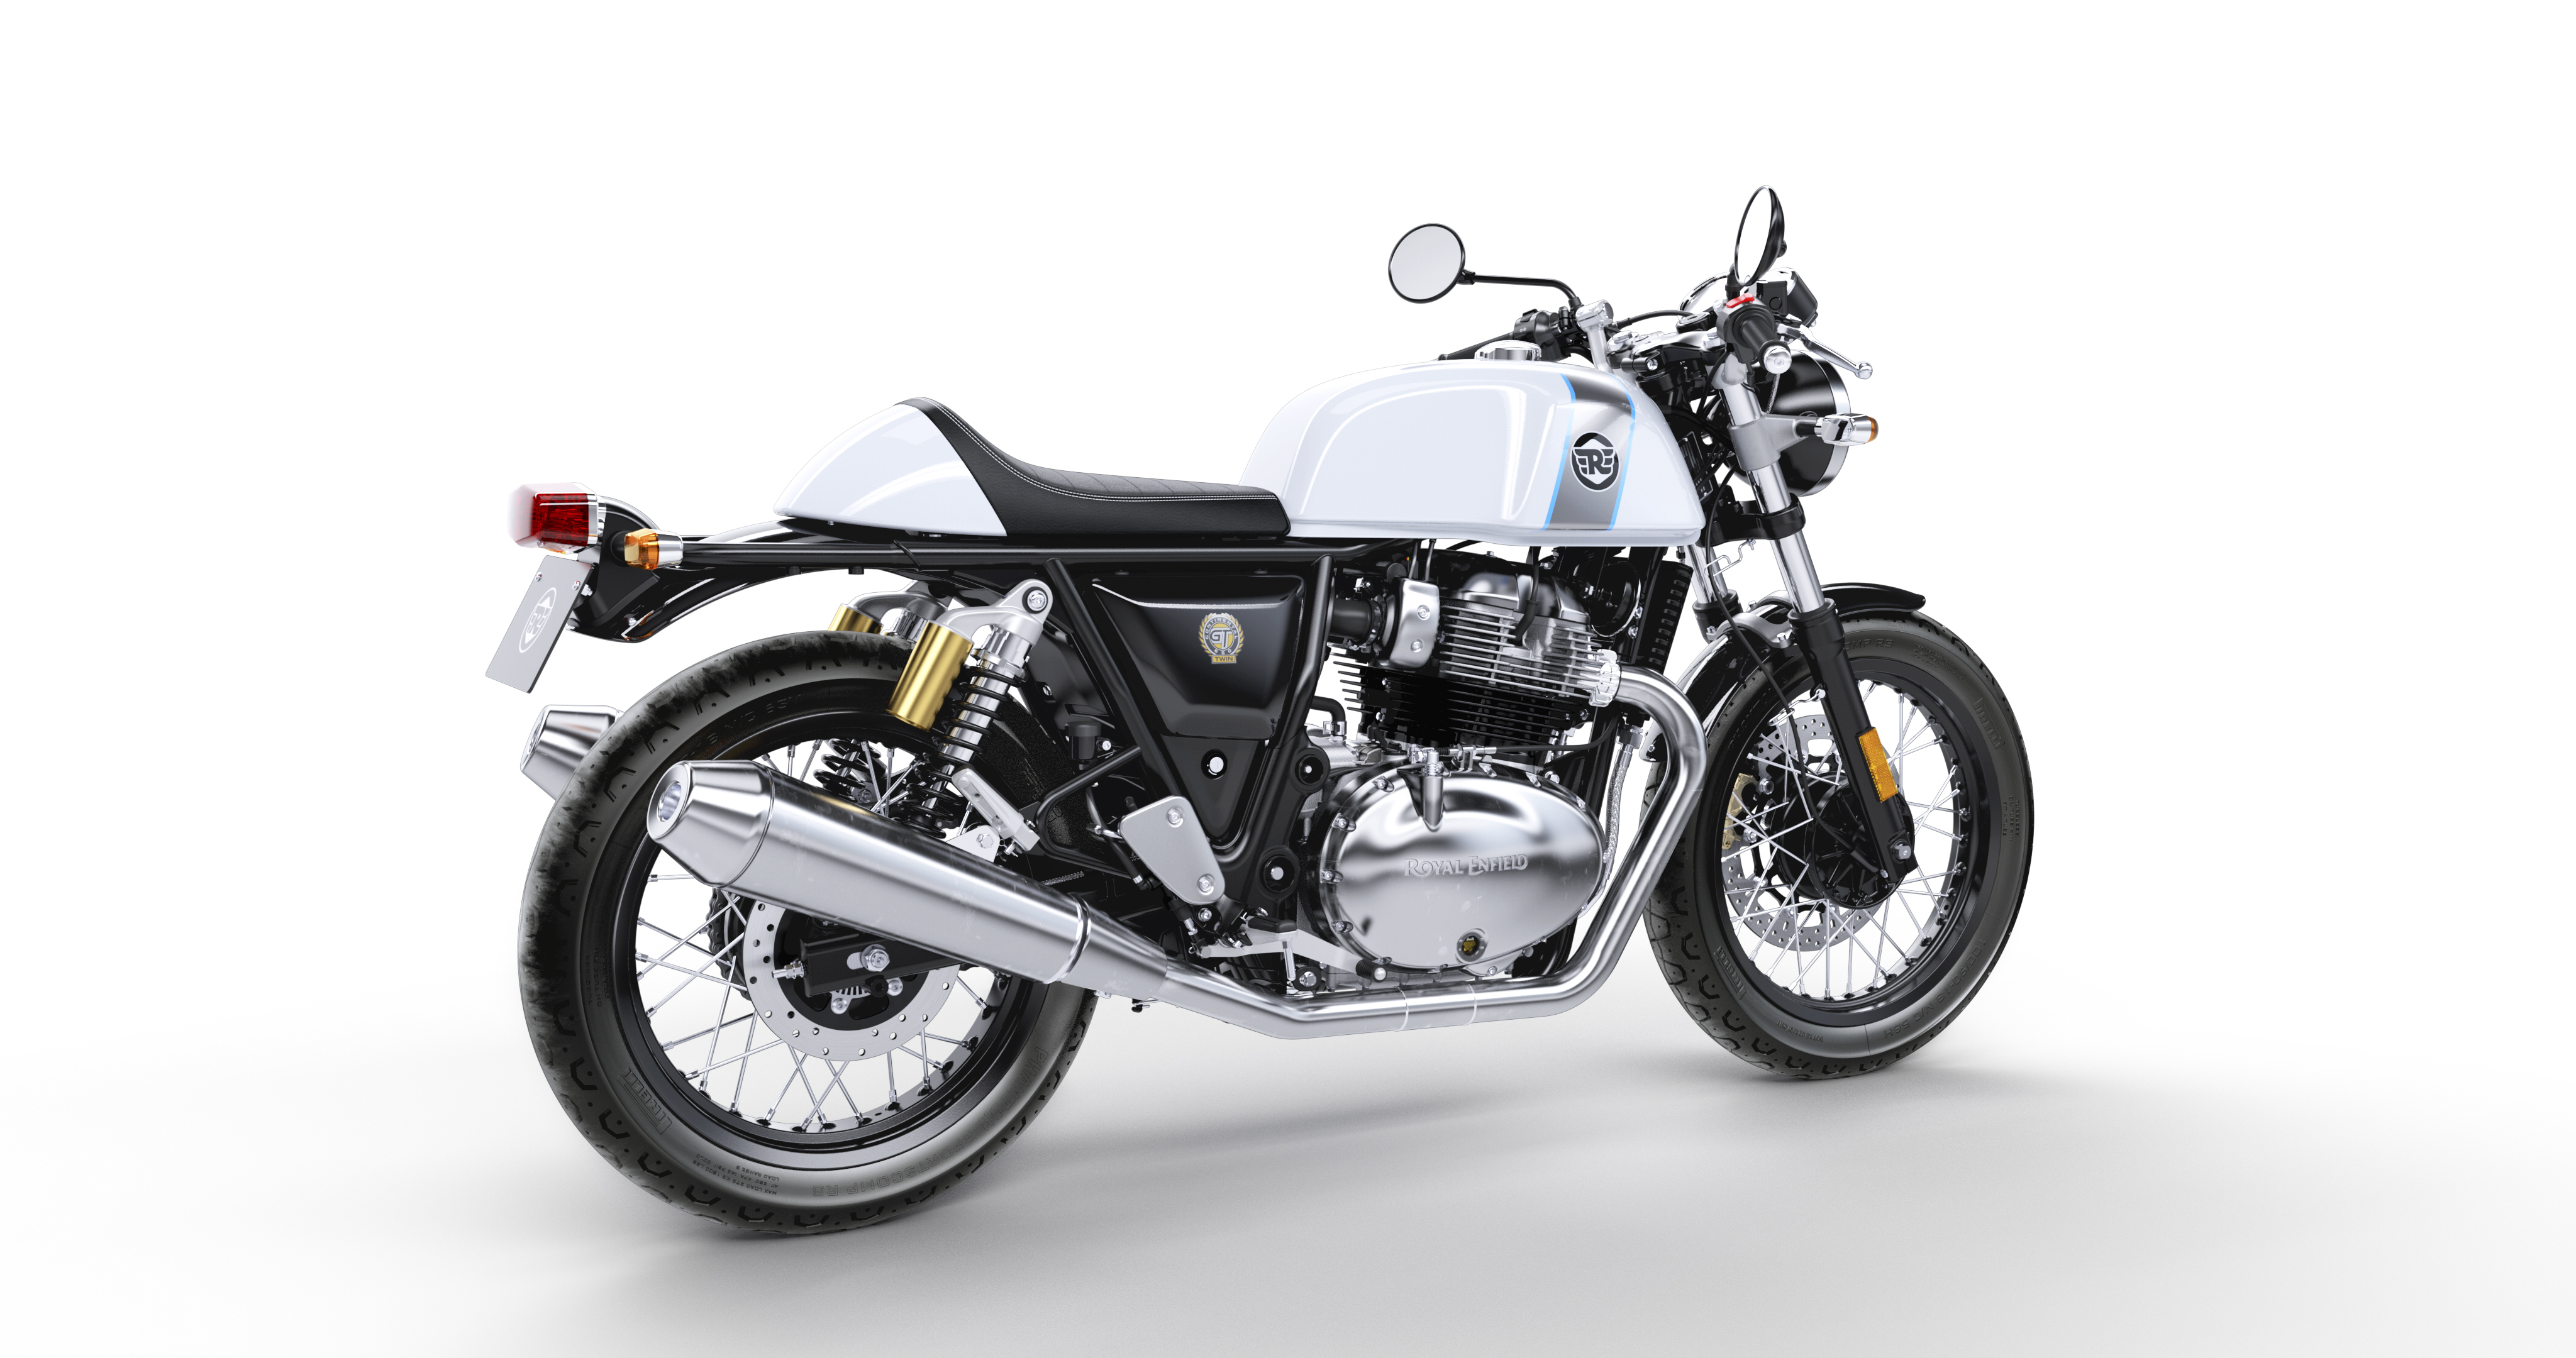 2019 Royal Enfield Continental Gt And Interceptor First Ride Review